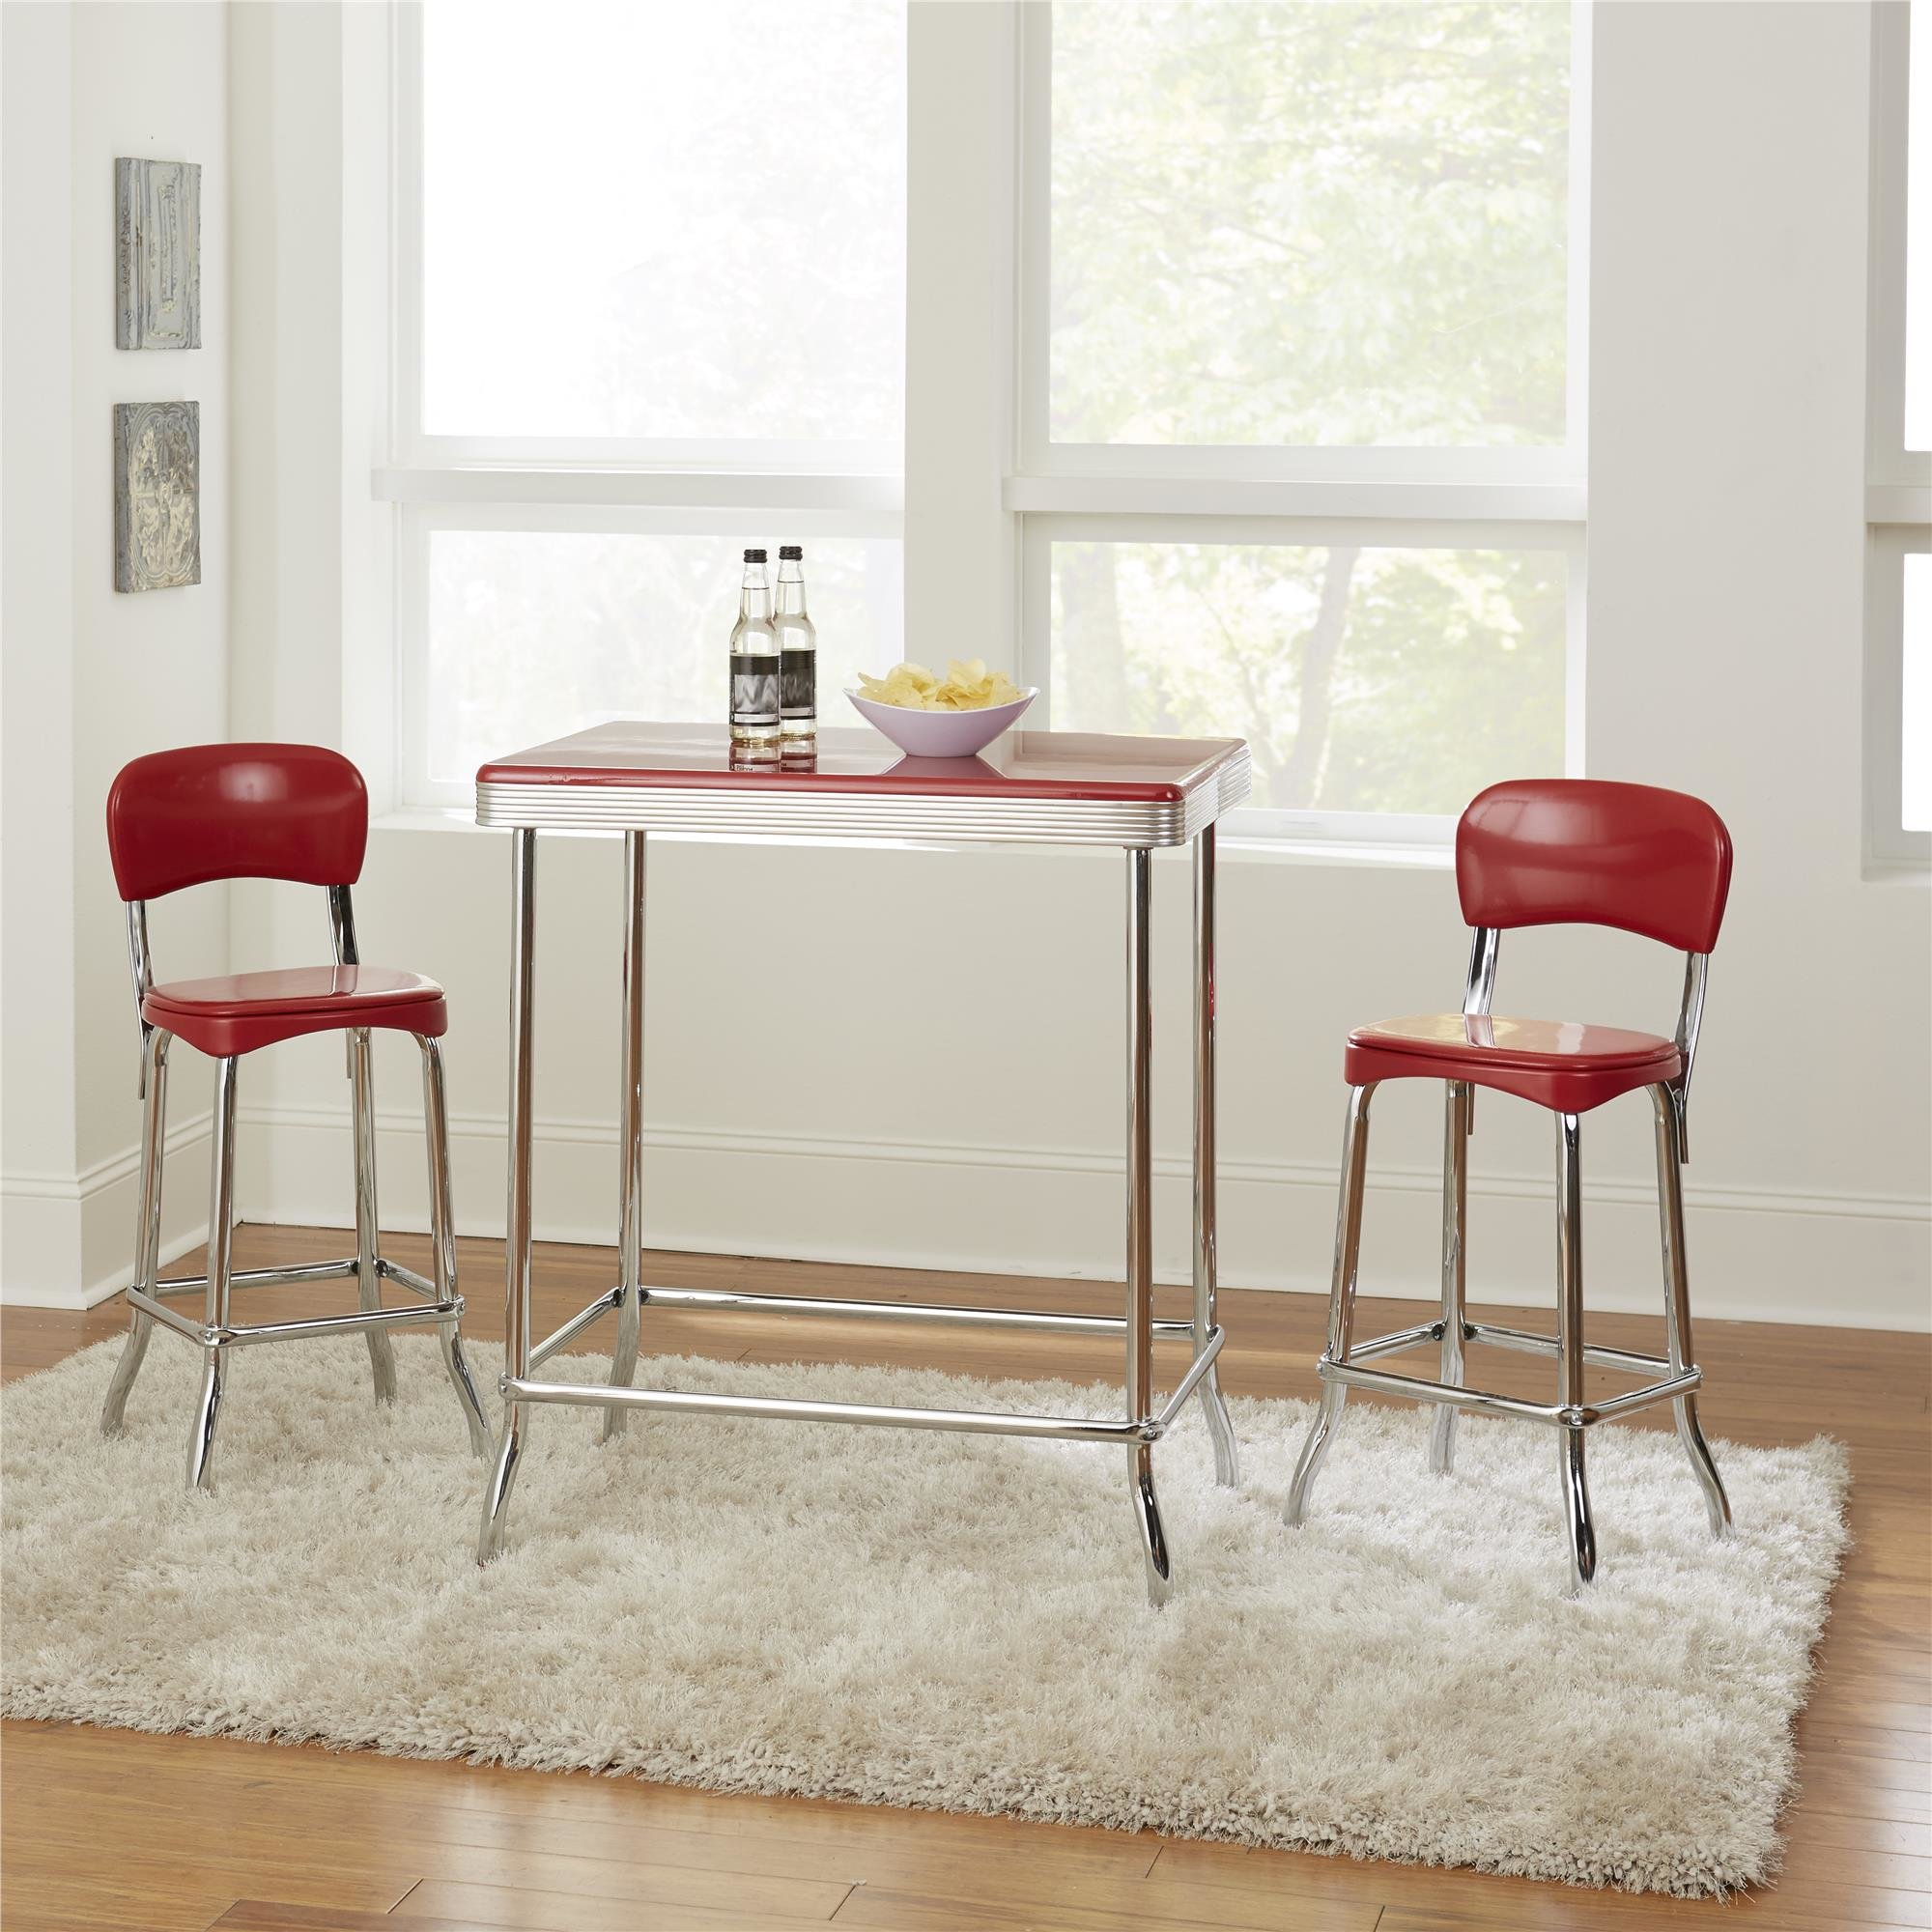 Featured Image of Bate Red Retro 3 Piece Dining Sets